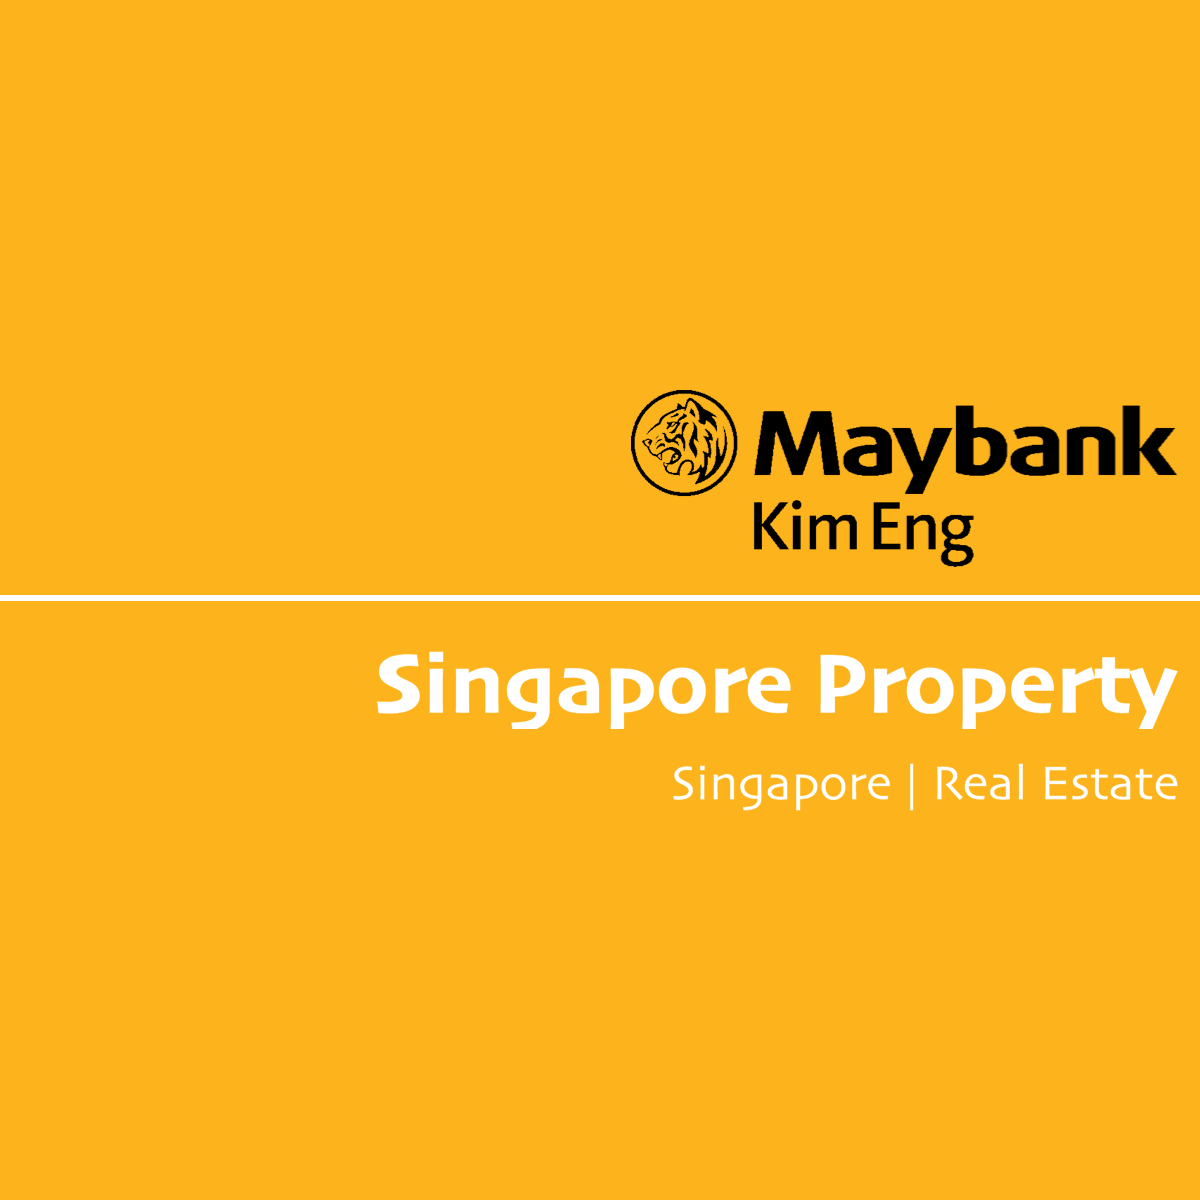 Singapore Property - Maybank Kim Eng 2018-01-15: Recovering Housing Market